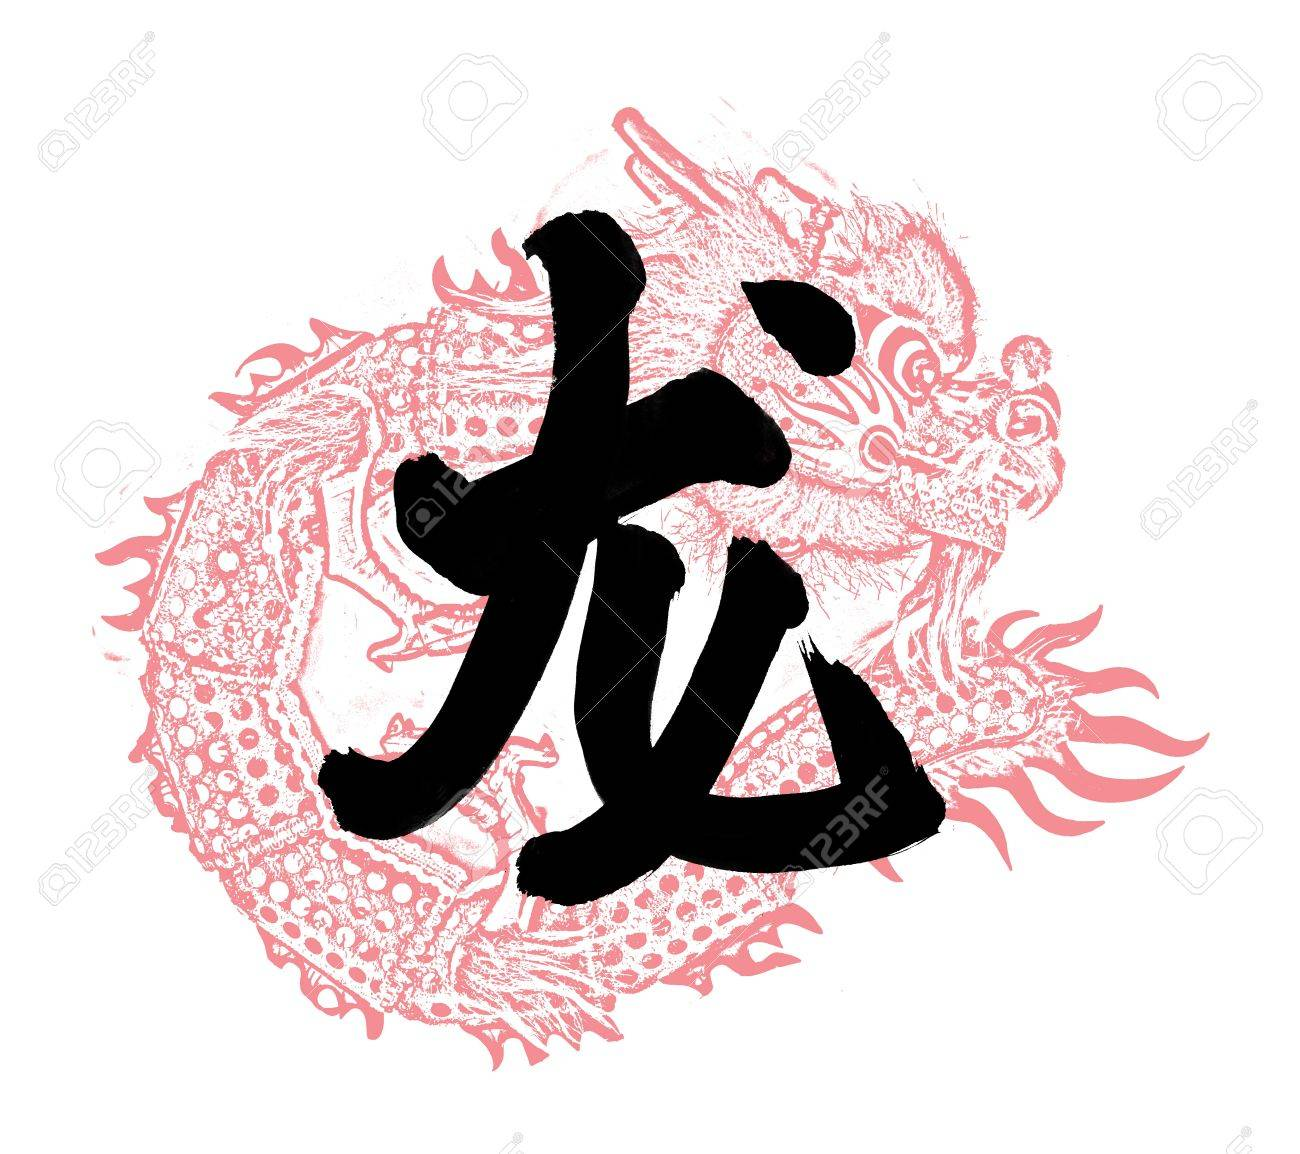 Words Mean Dragon Chinese New Year Calligraphy For The Year Of     Chinese New Year Calligraphy for the Year of Dragon